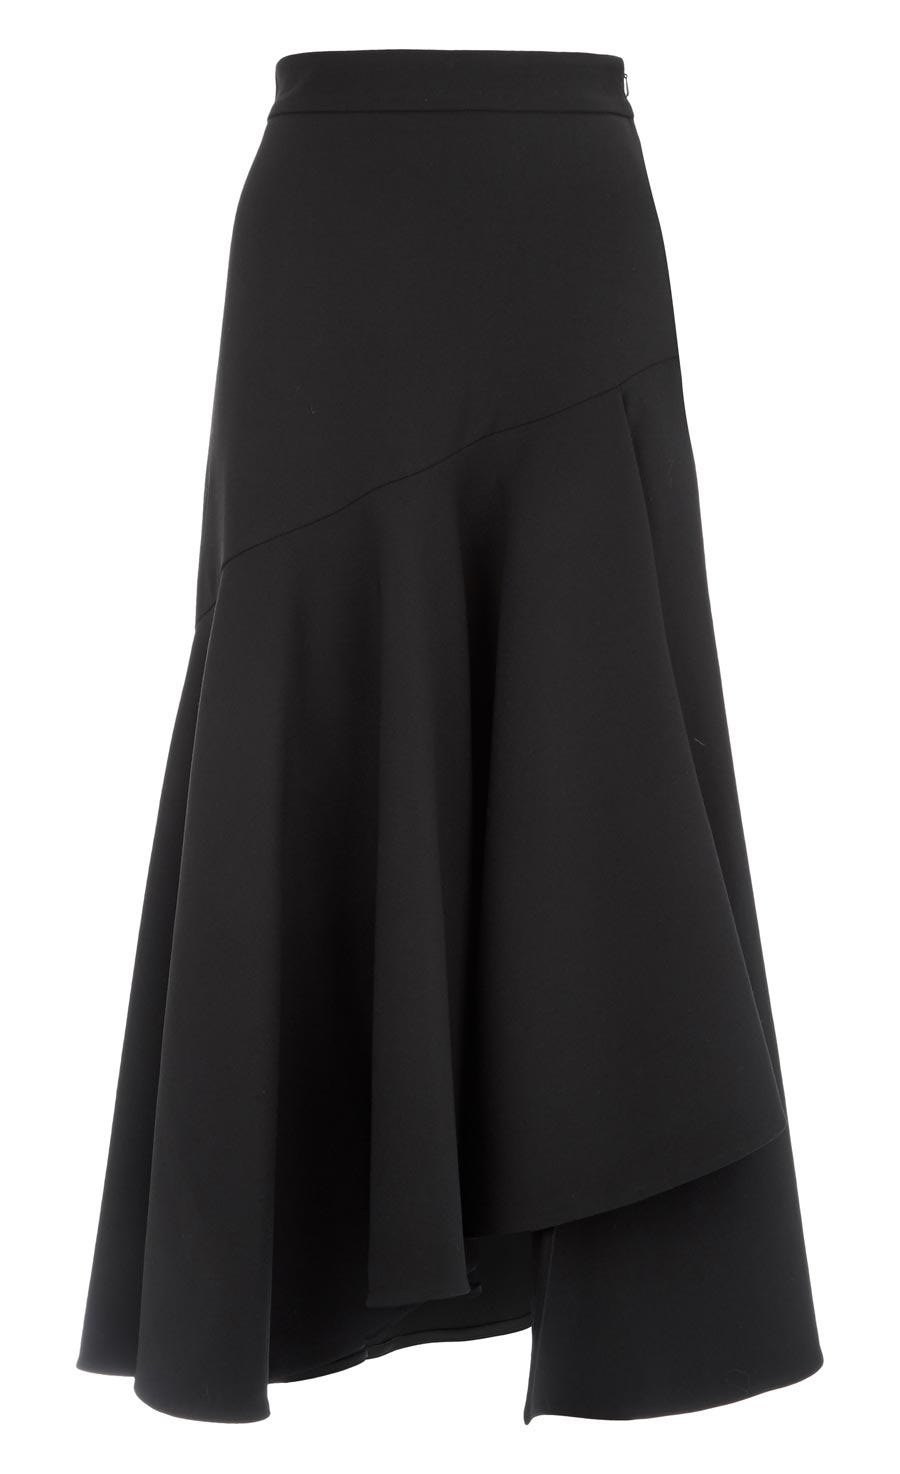 Mercury Plain Ruffle Skirt, Black